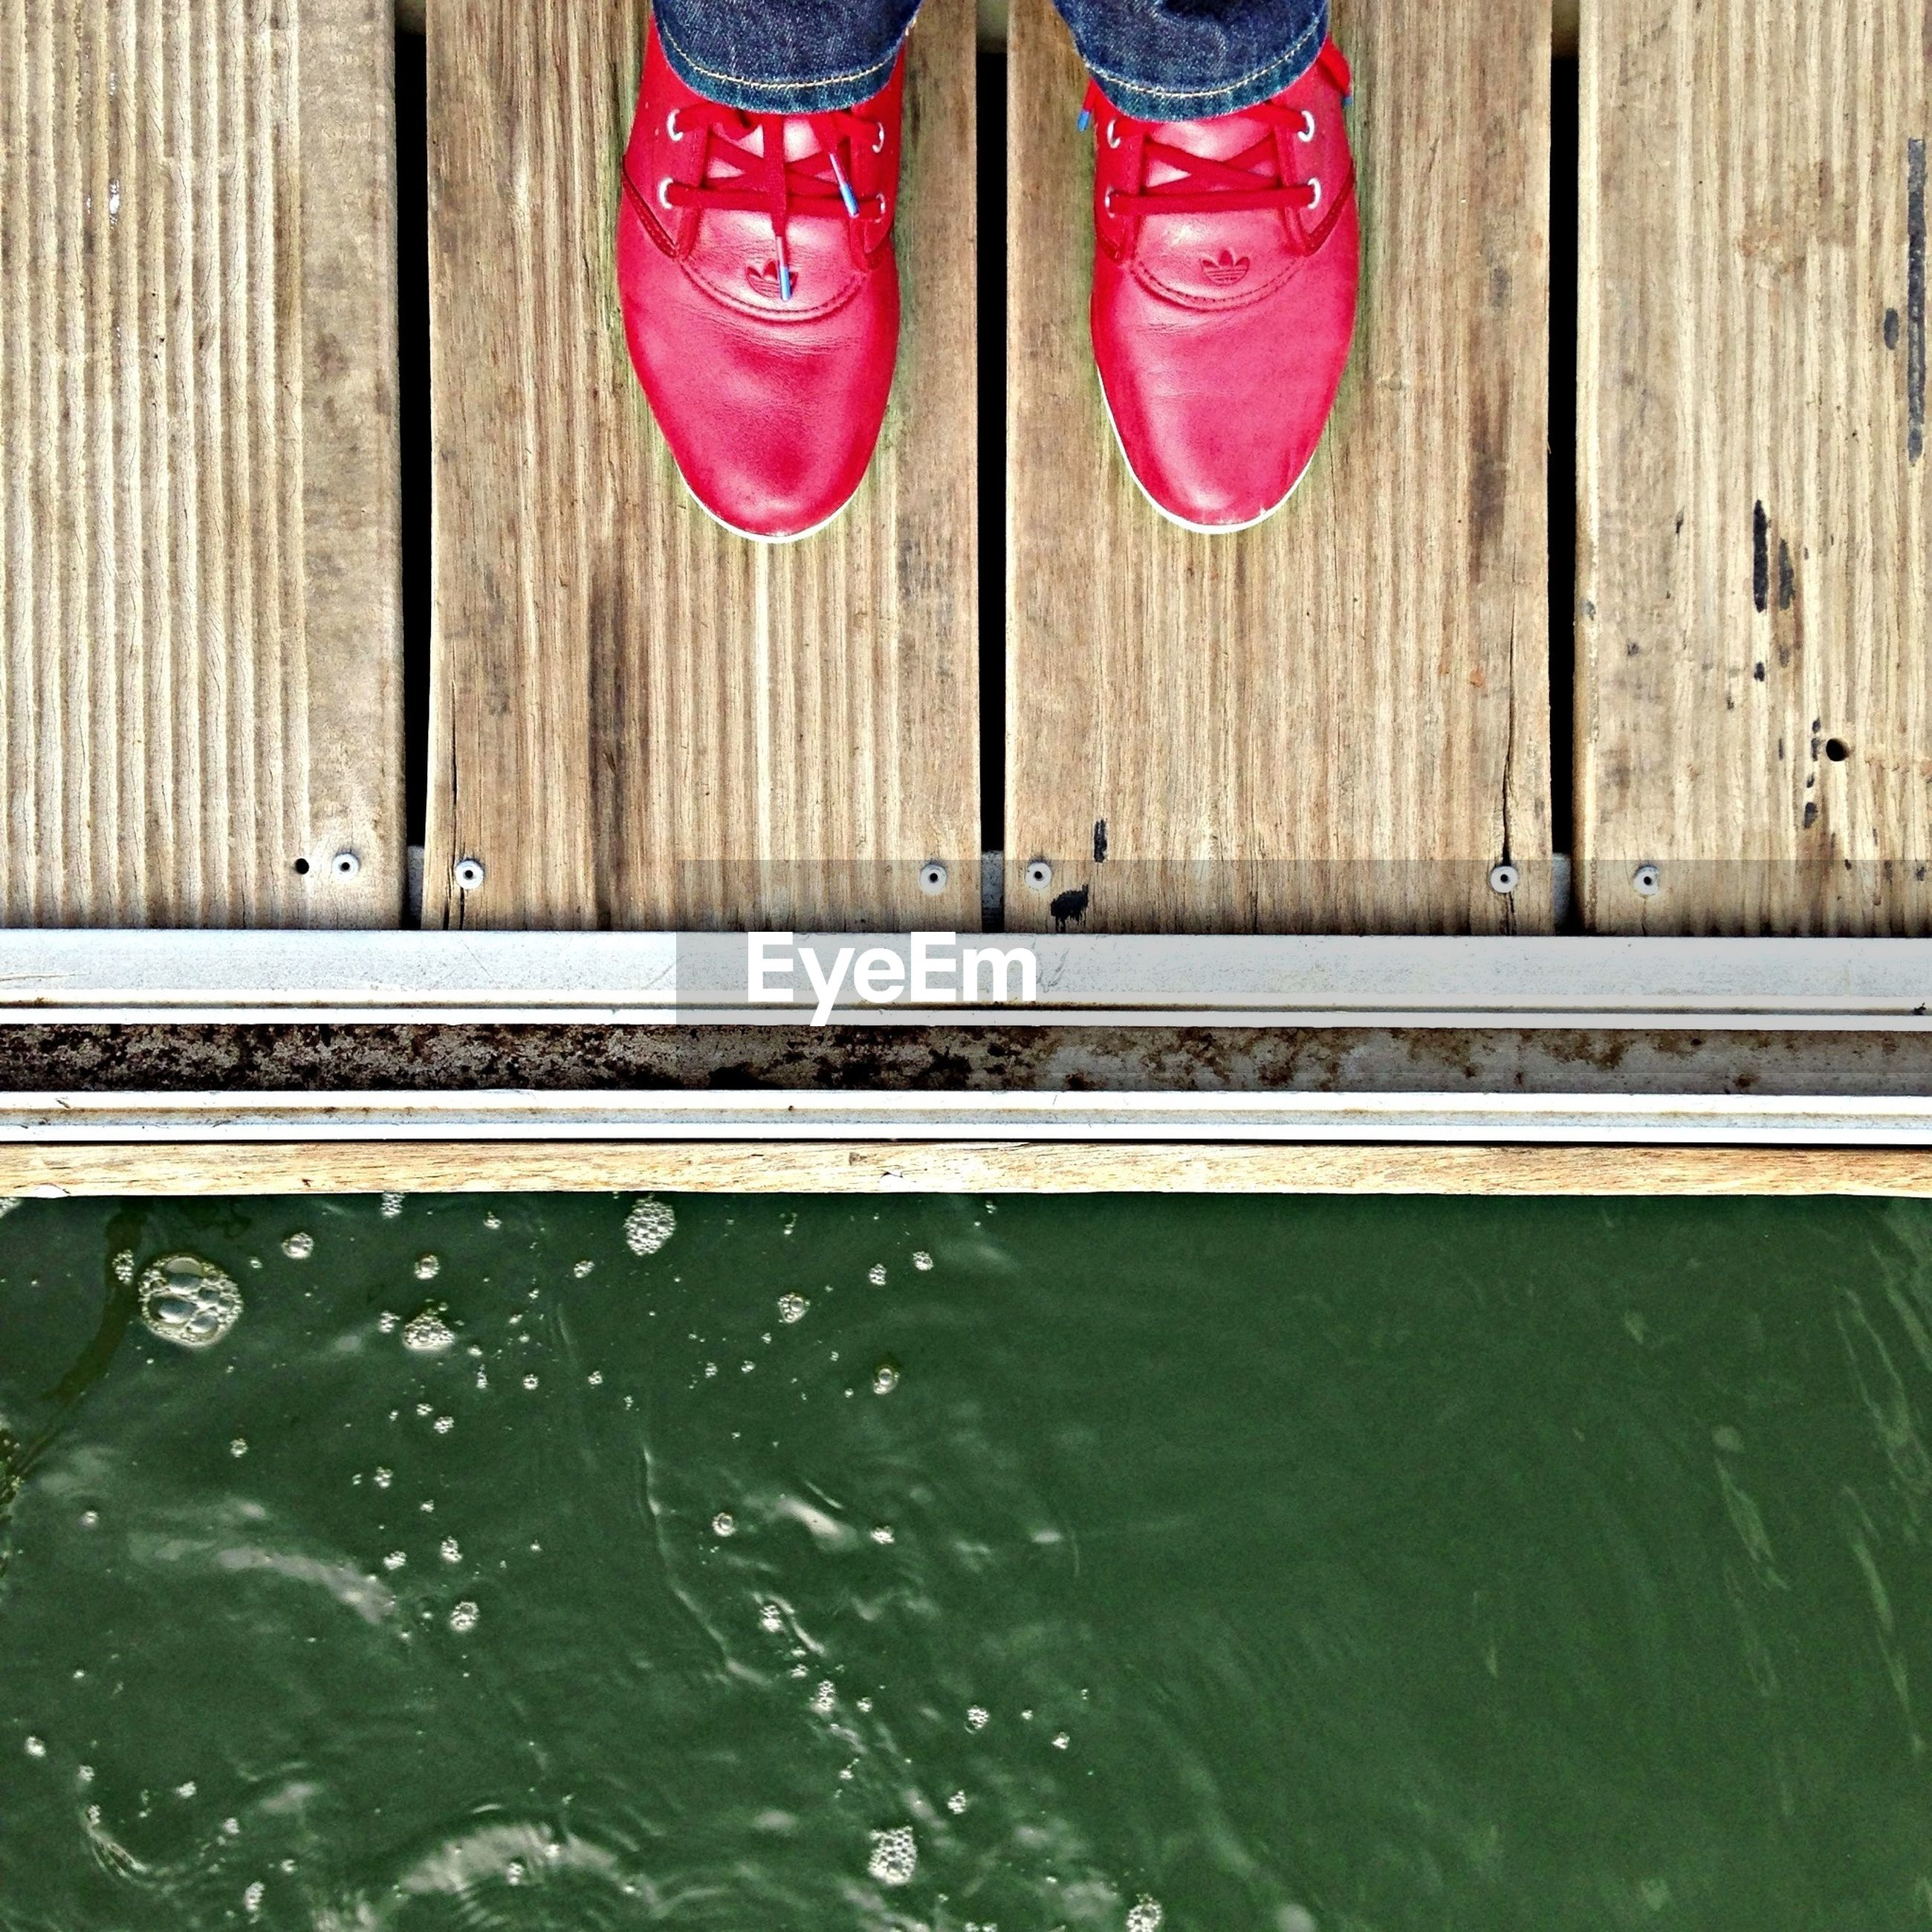 Close-up of cropped red shoes at poolside